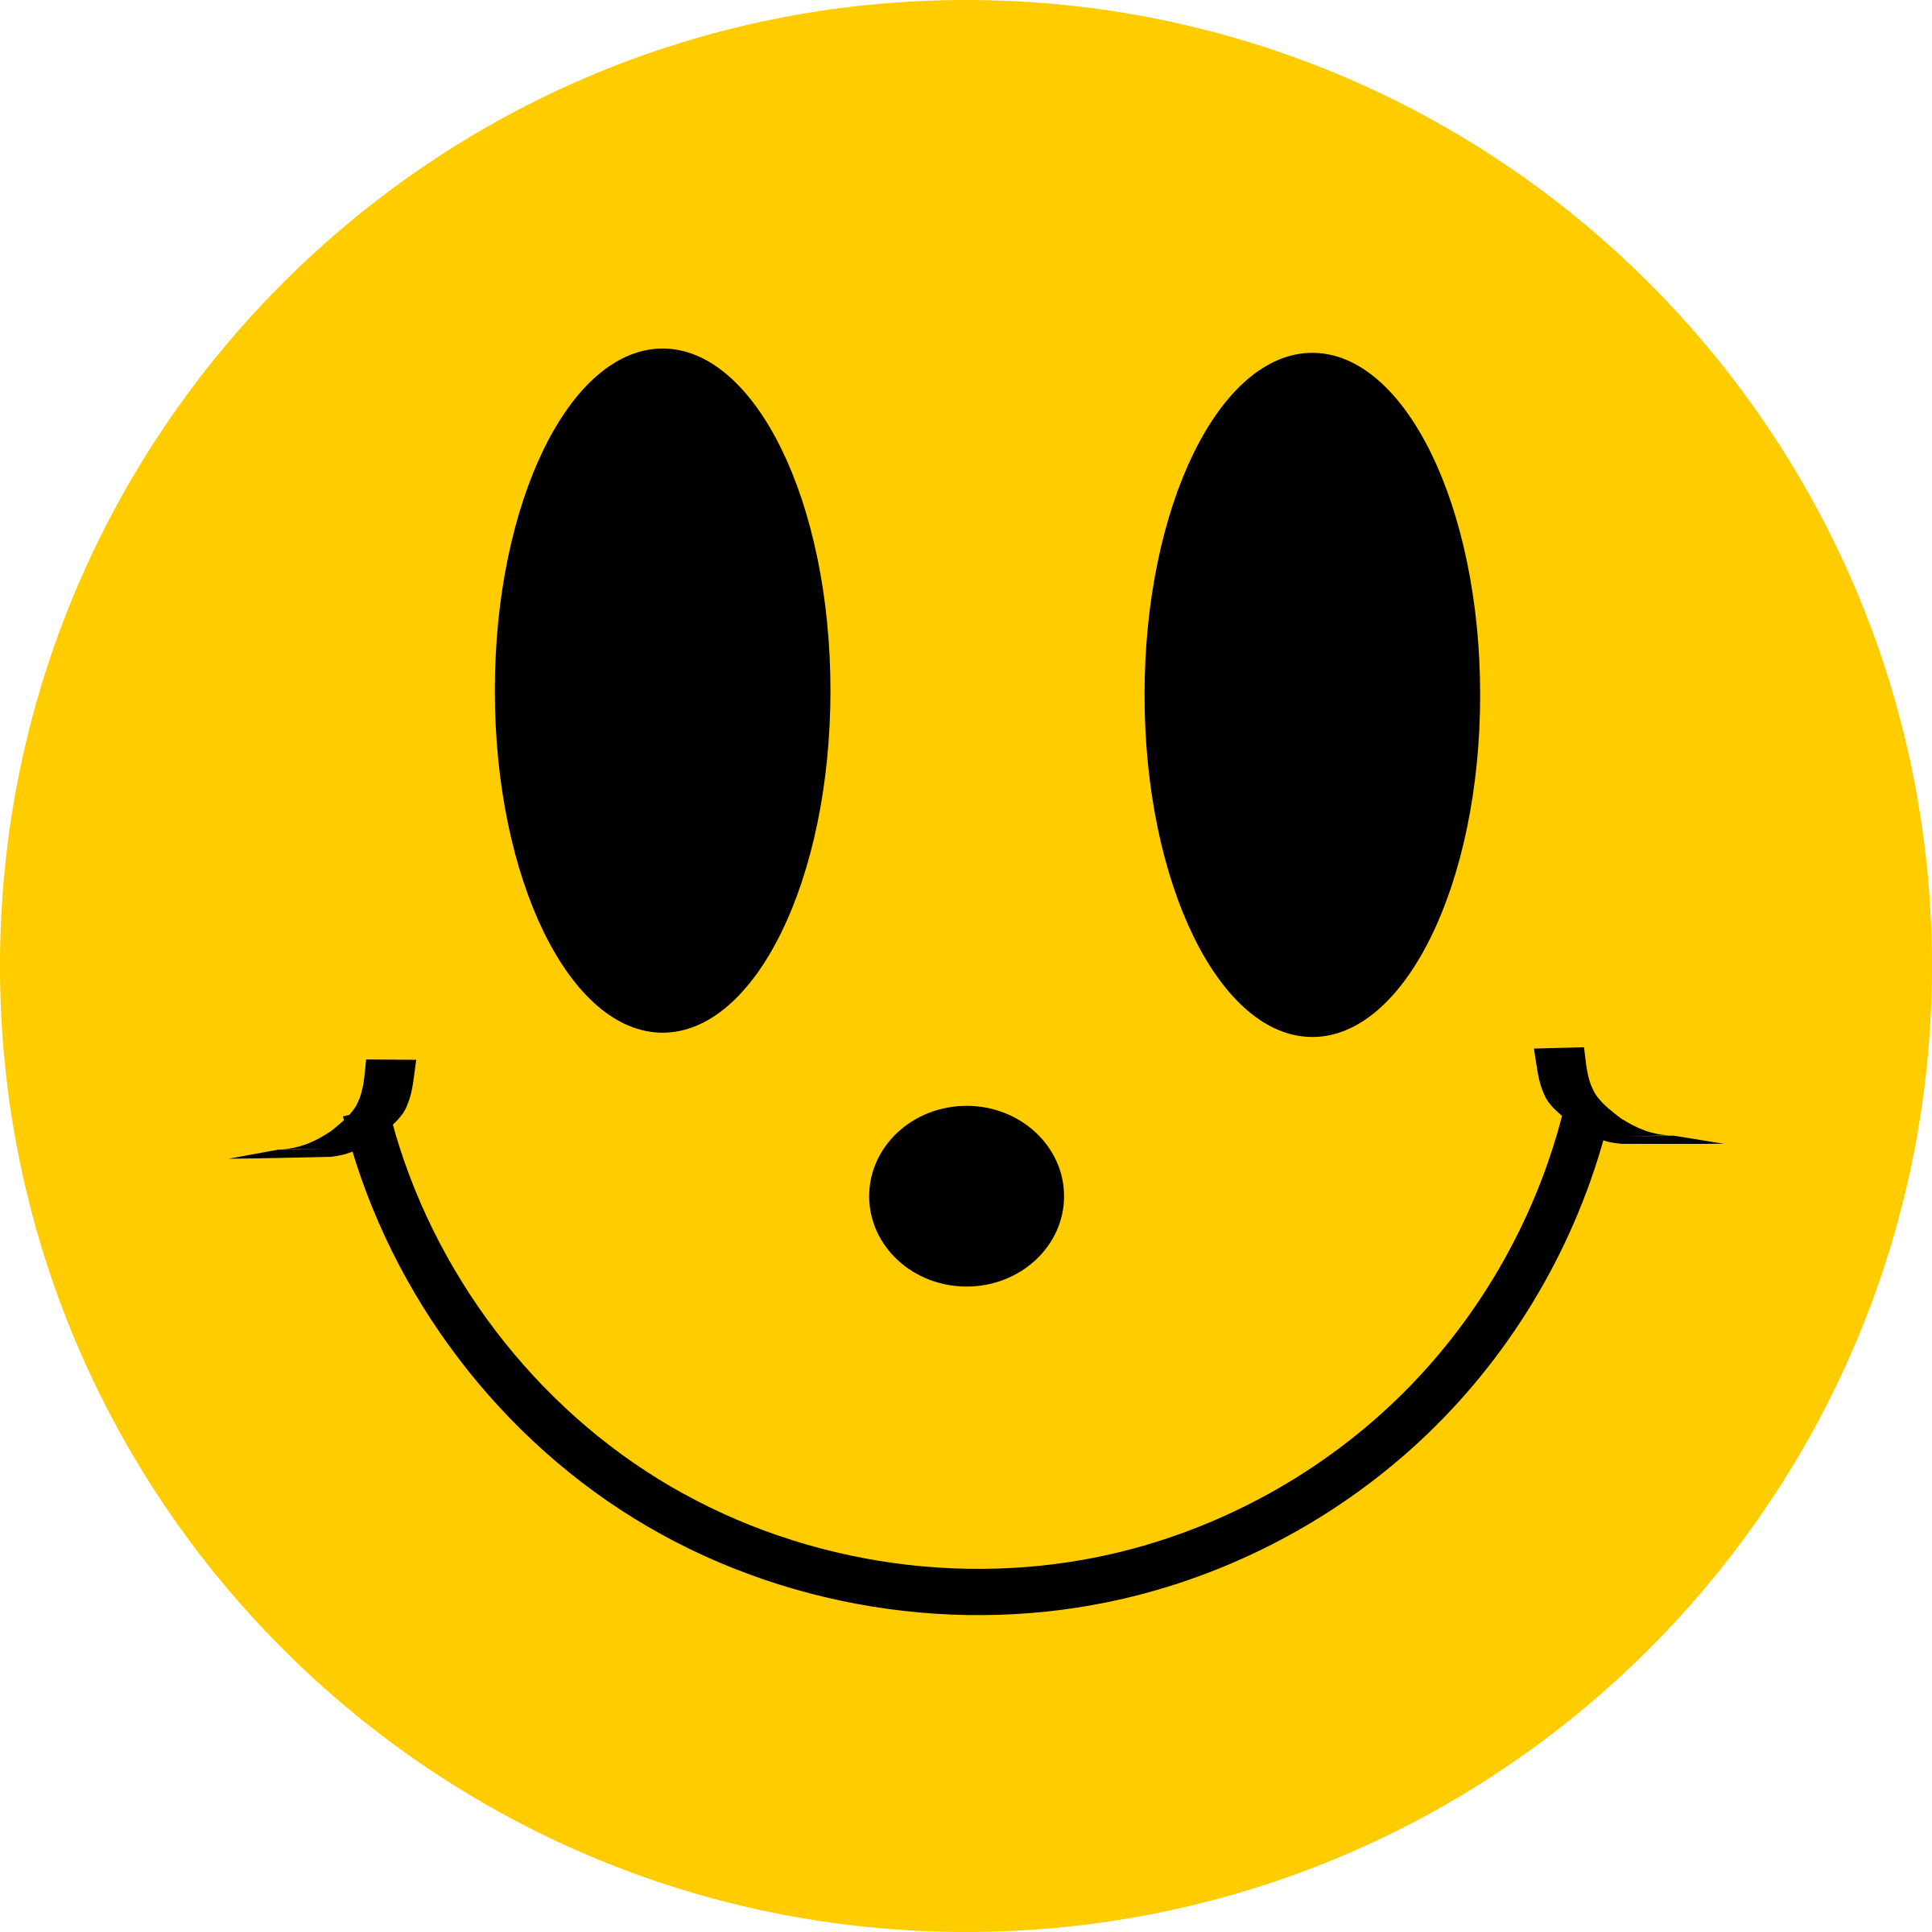 Smiley Looking Happy Png Image Smiley Colorful Drawings Emoticon